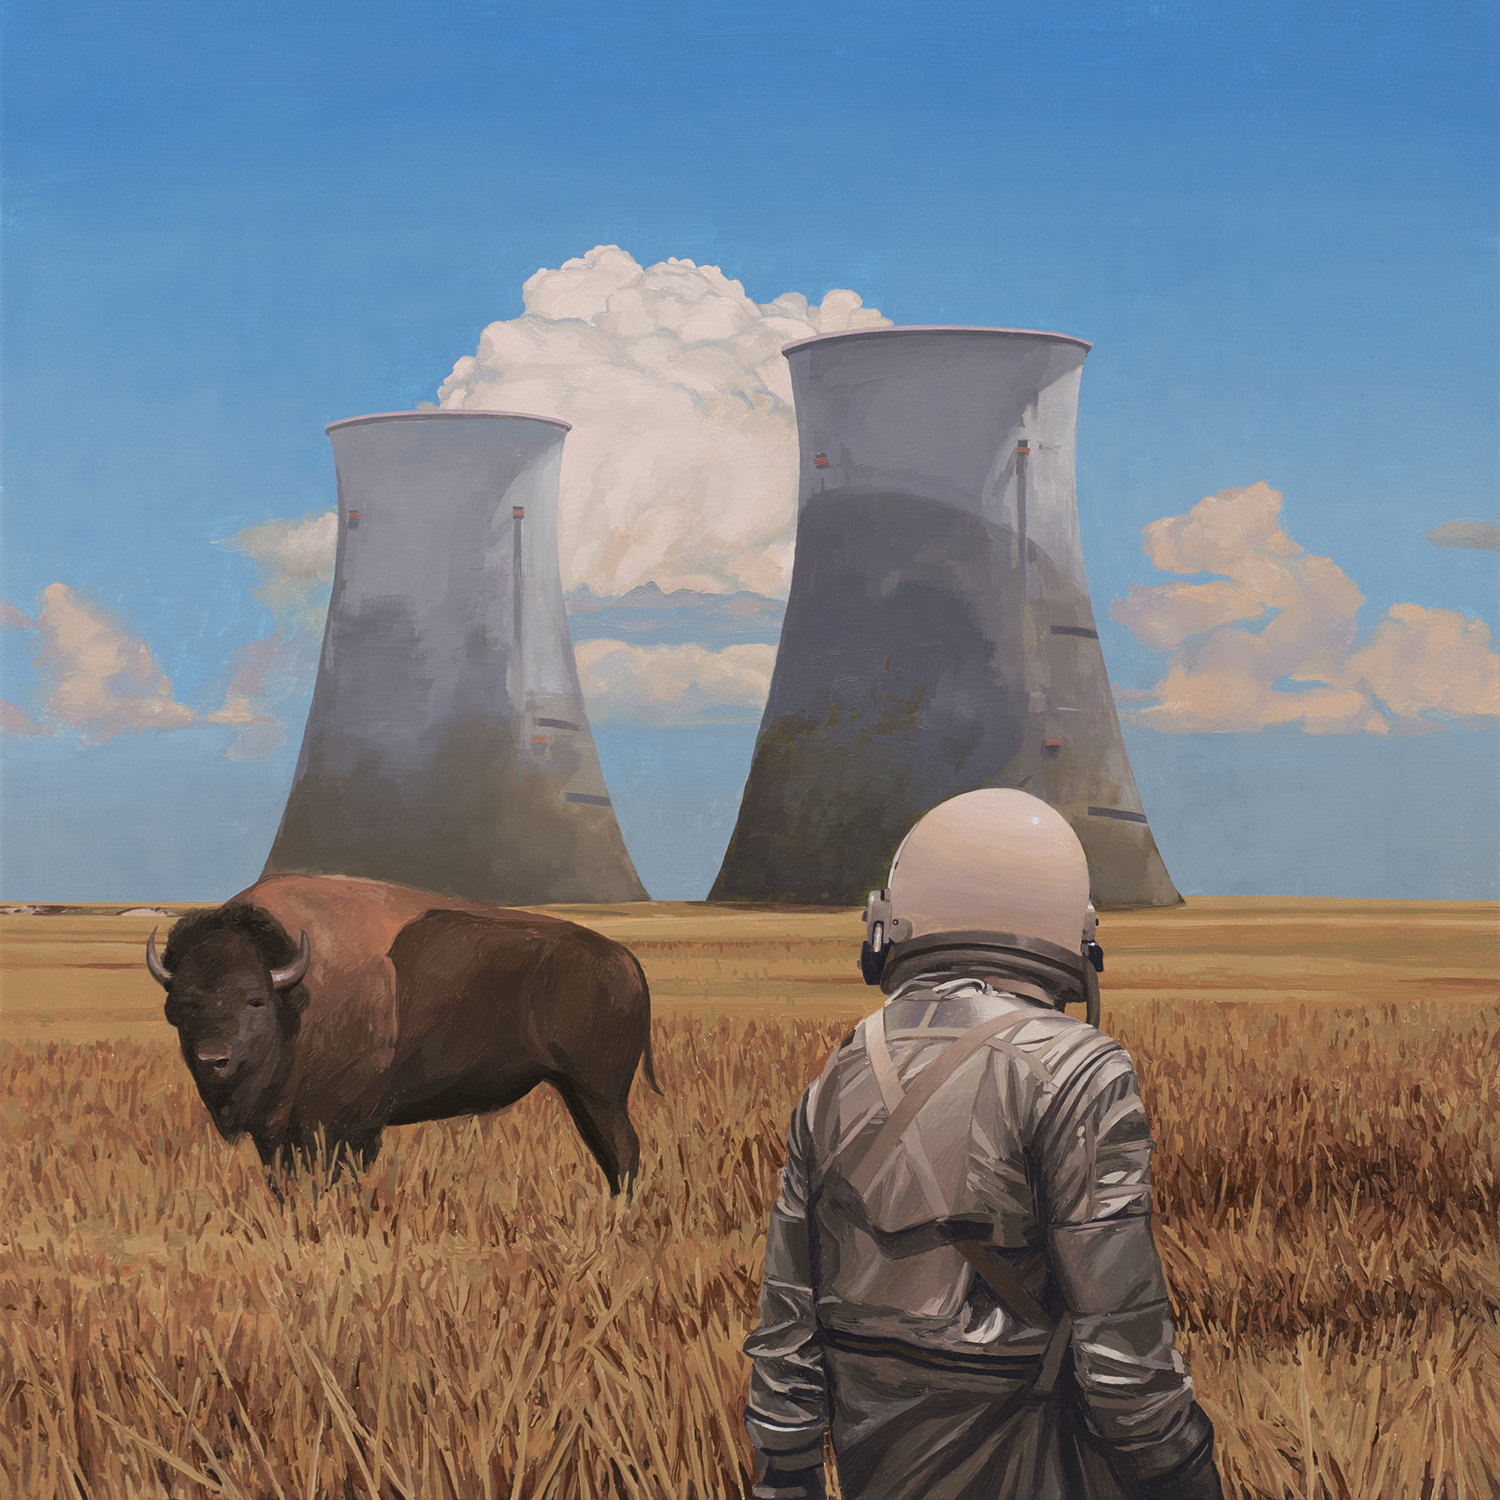 buffalo and astronaut in field, painting